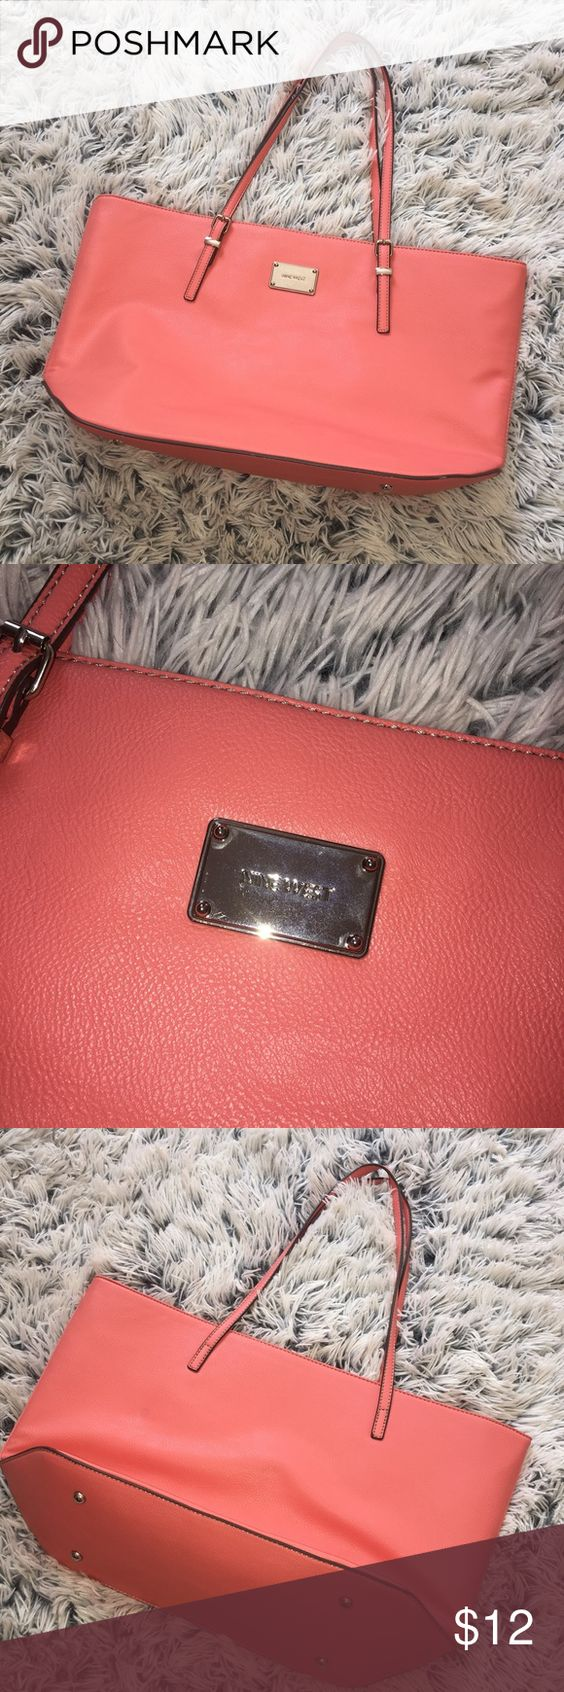 Nine West purse Very spacious, it's more of a peachy color. Nine West Bags